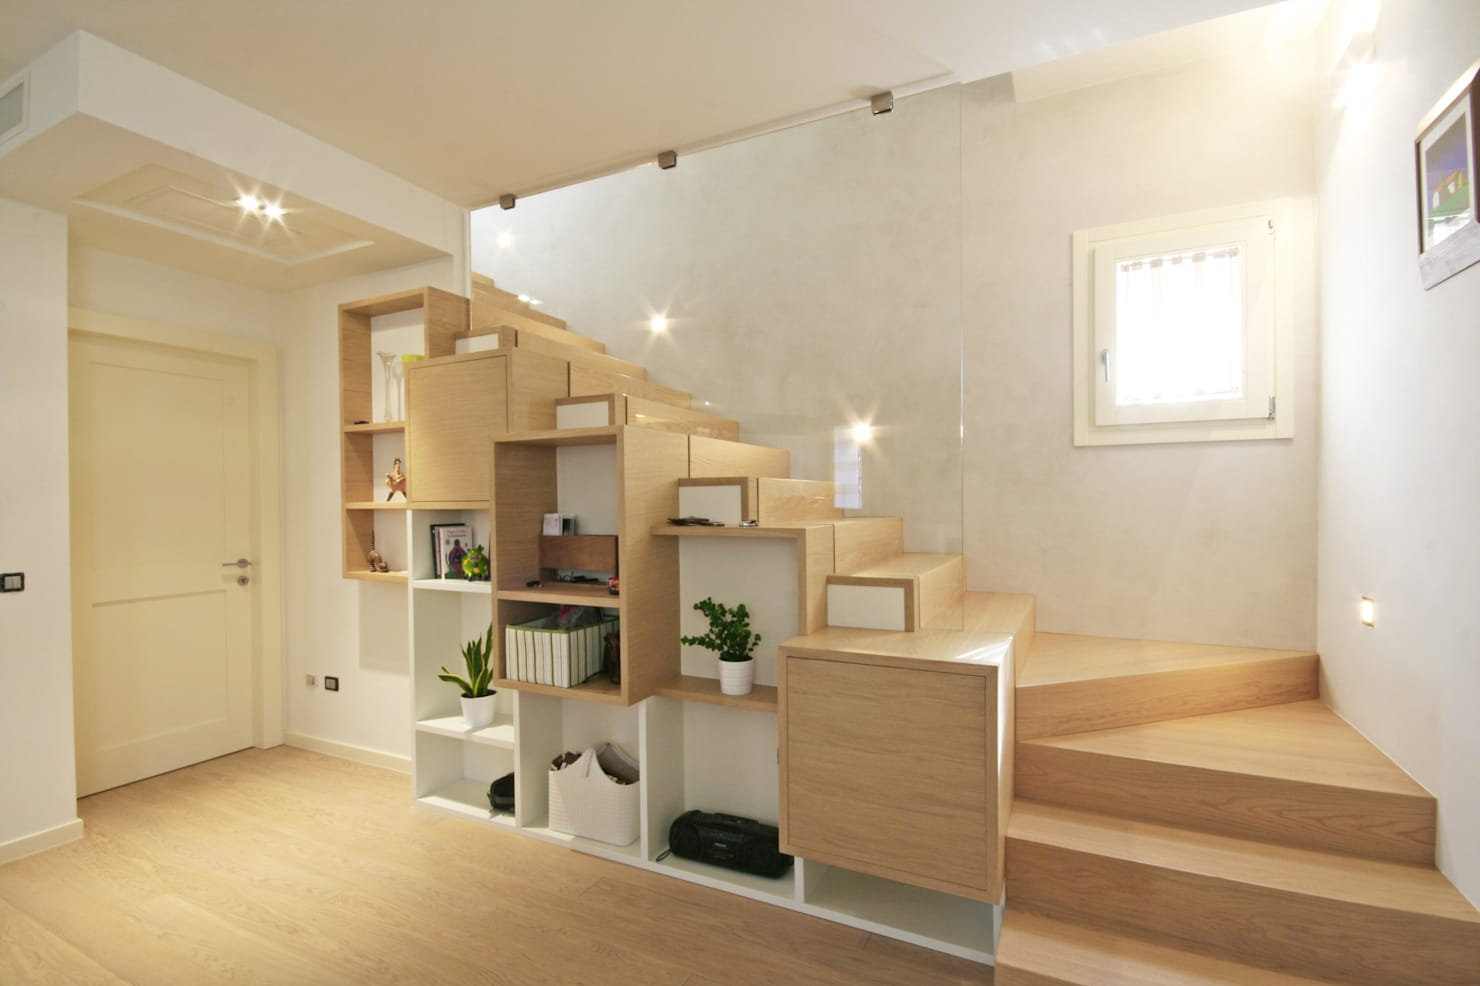 8 brilliant storage ideas that you have never seen before